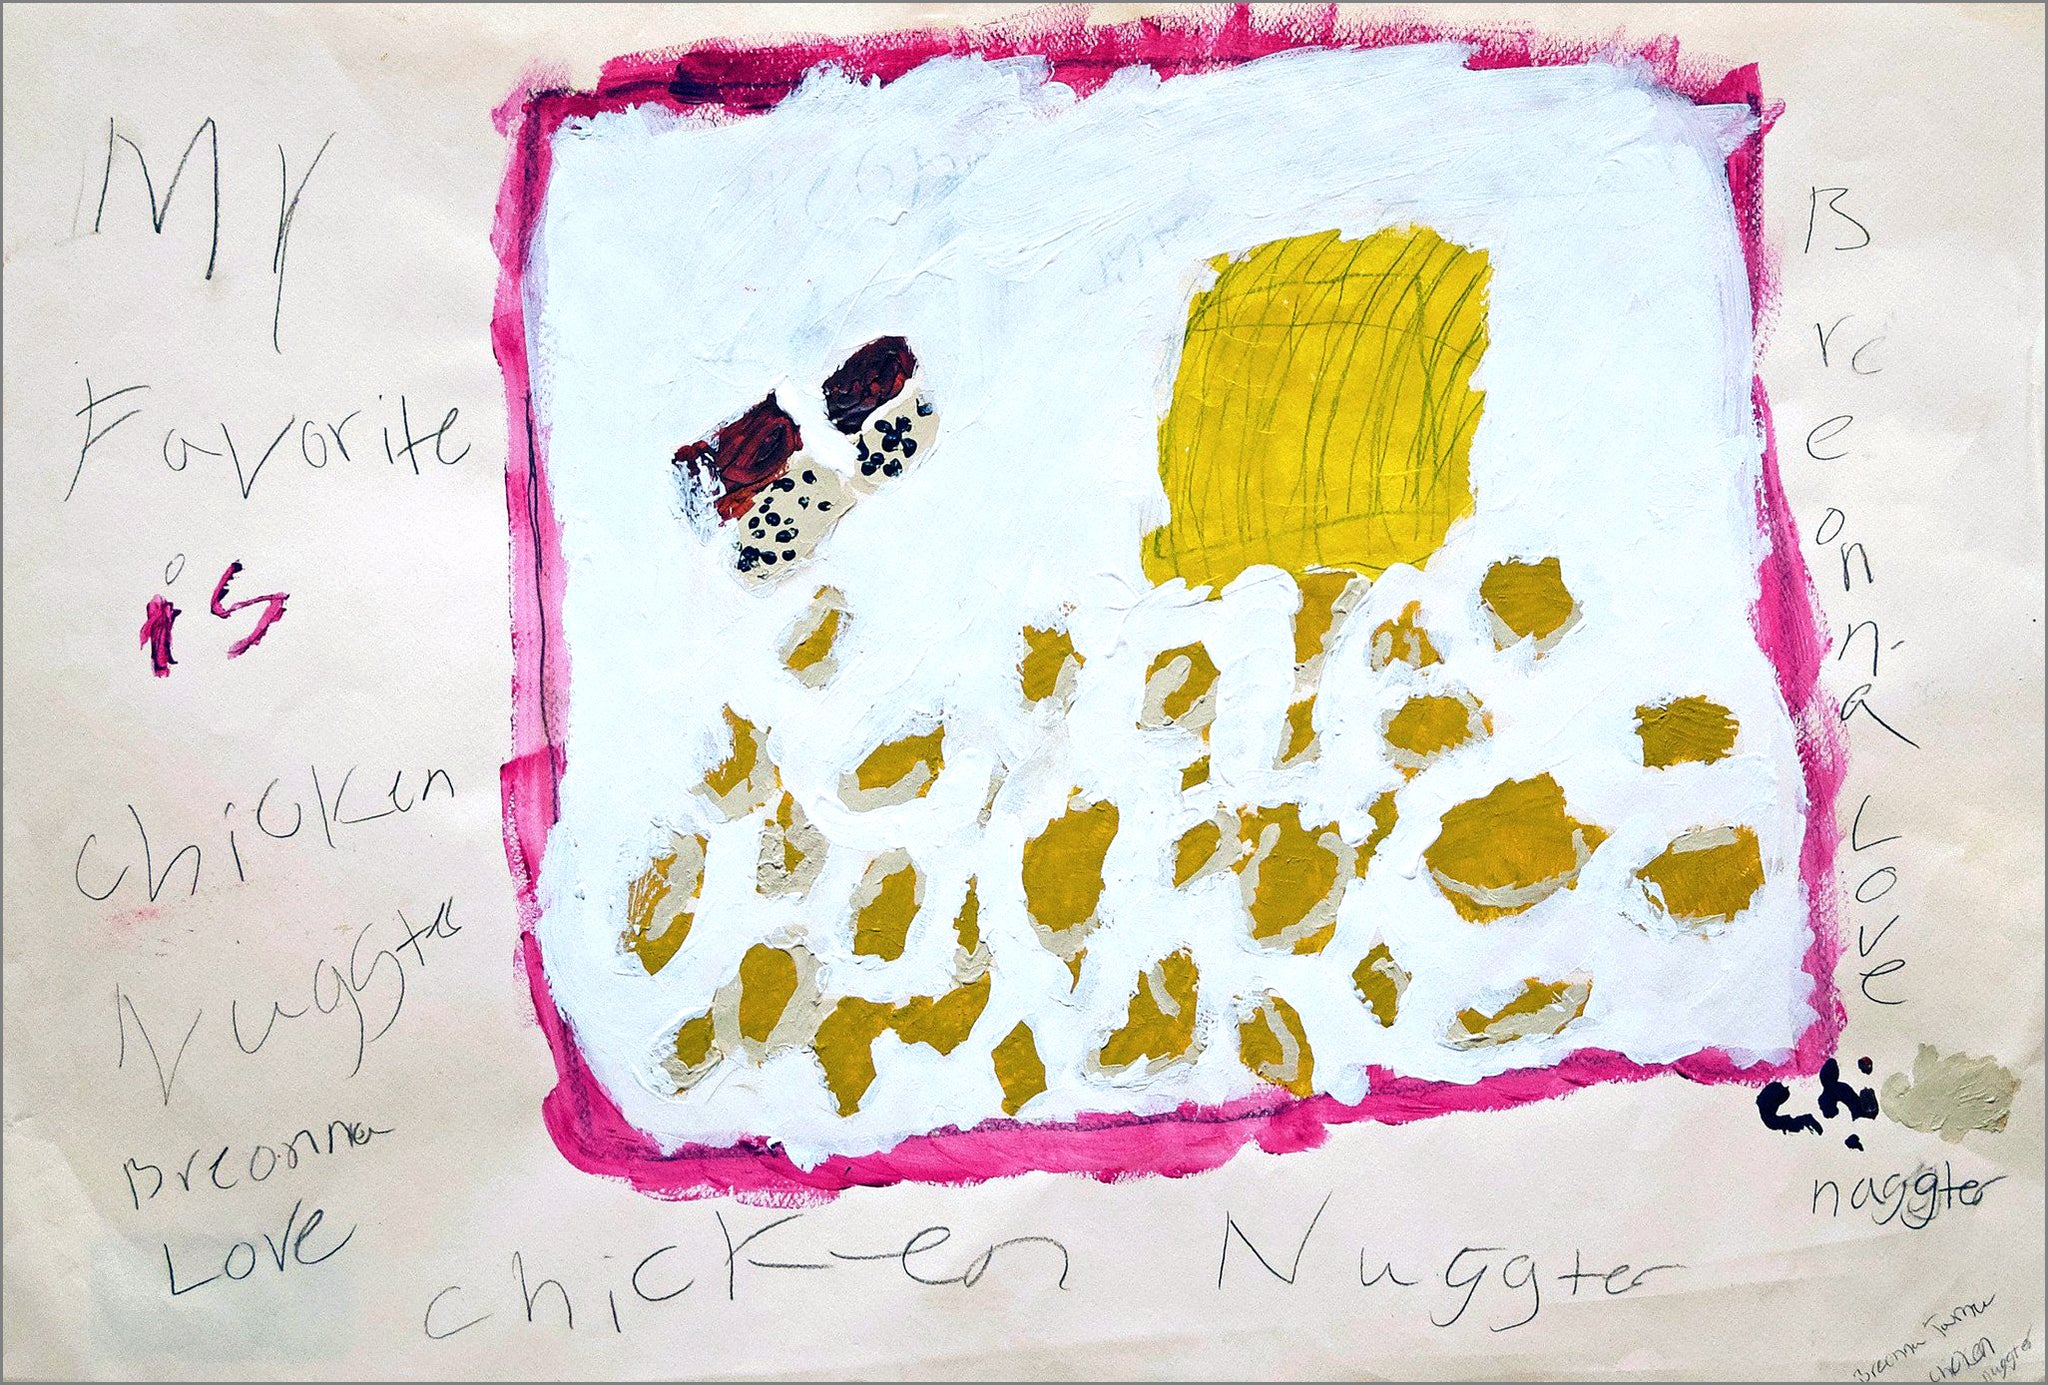 Chicken Nuggets (D6211)